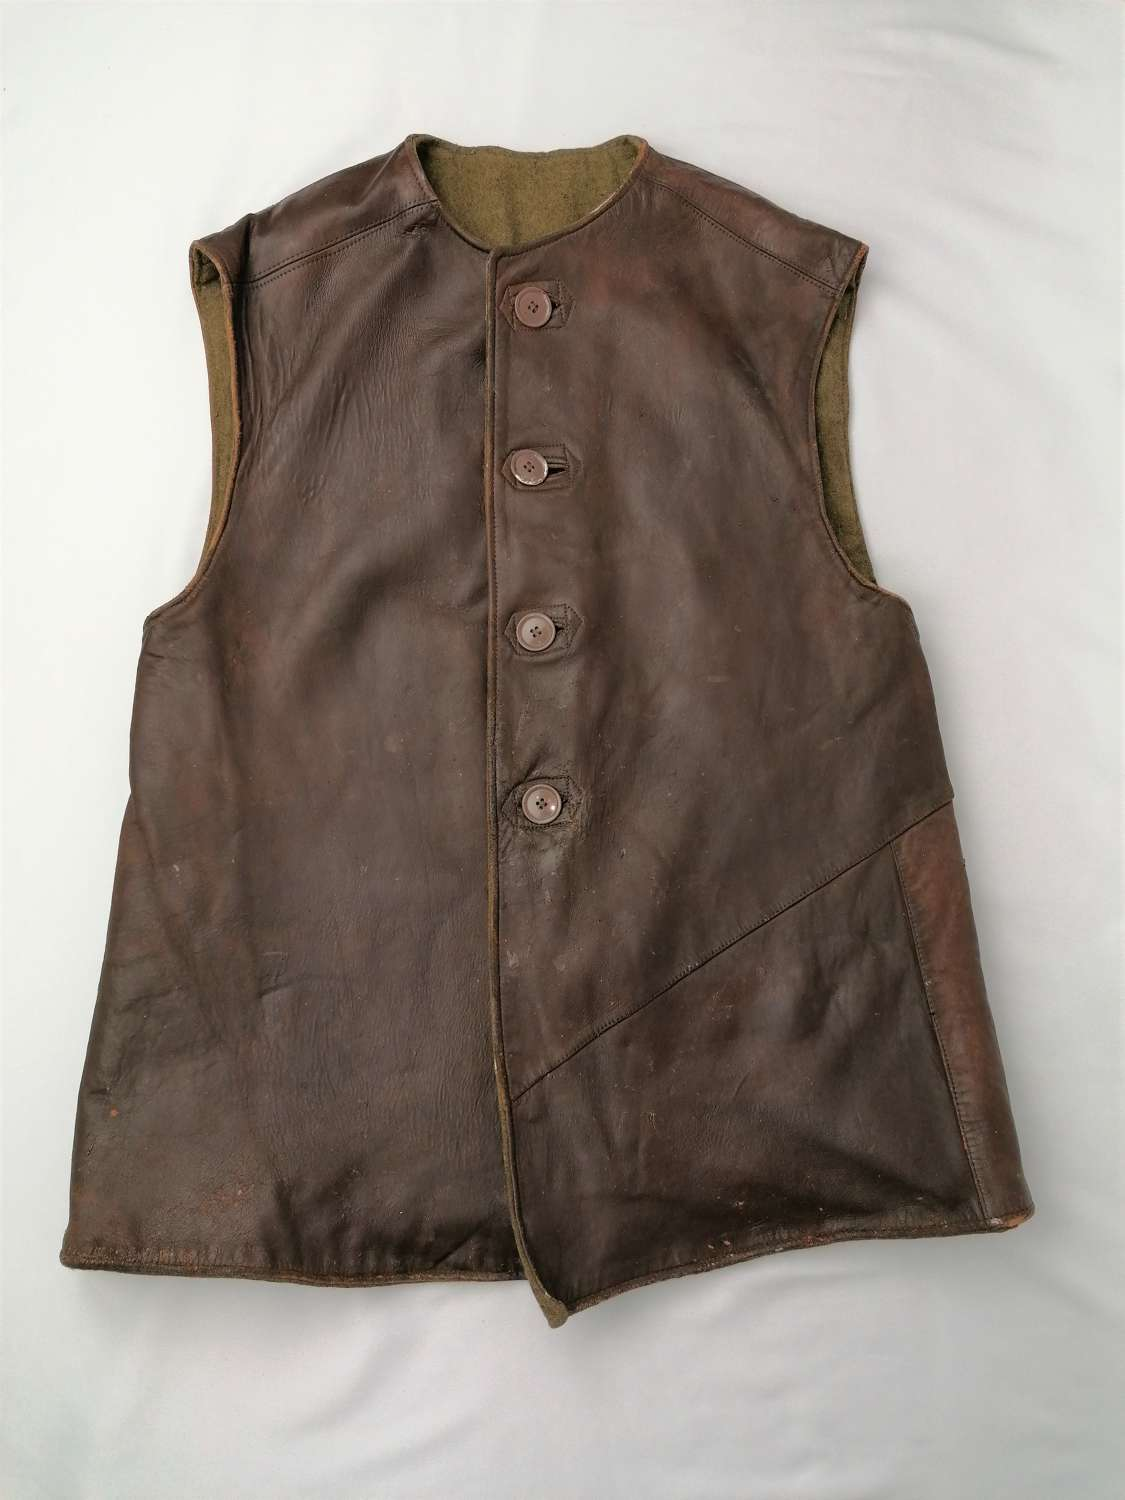 Early War British Leather Jerkin